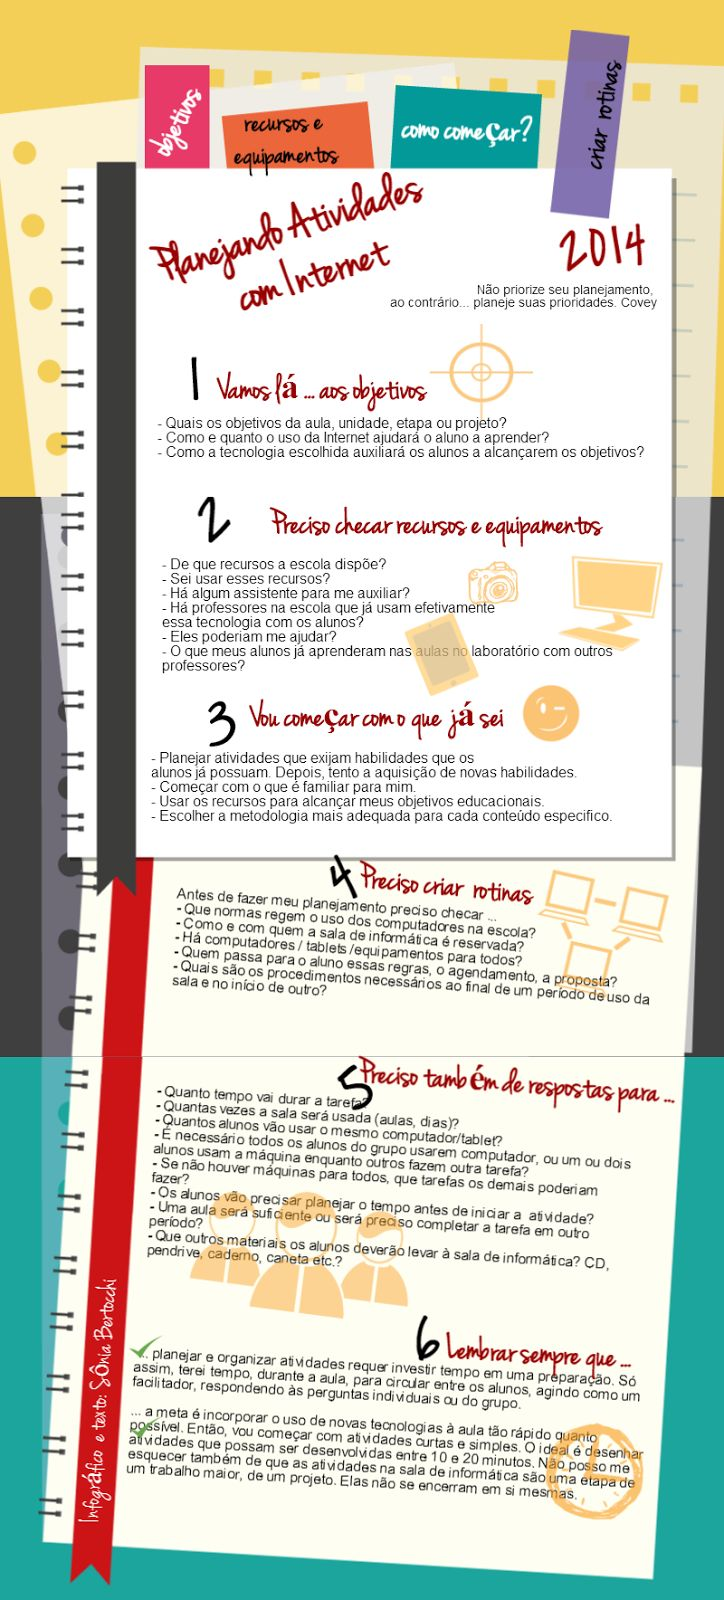 550 best -Informática Educativa- images on Pinterest ...